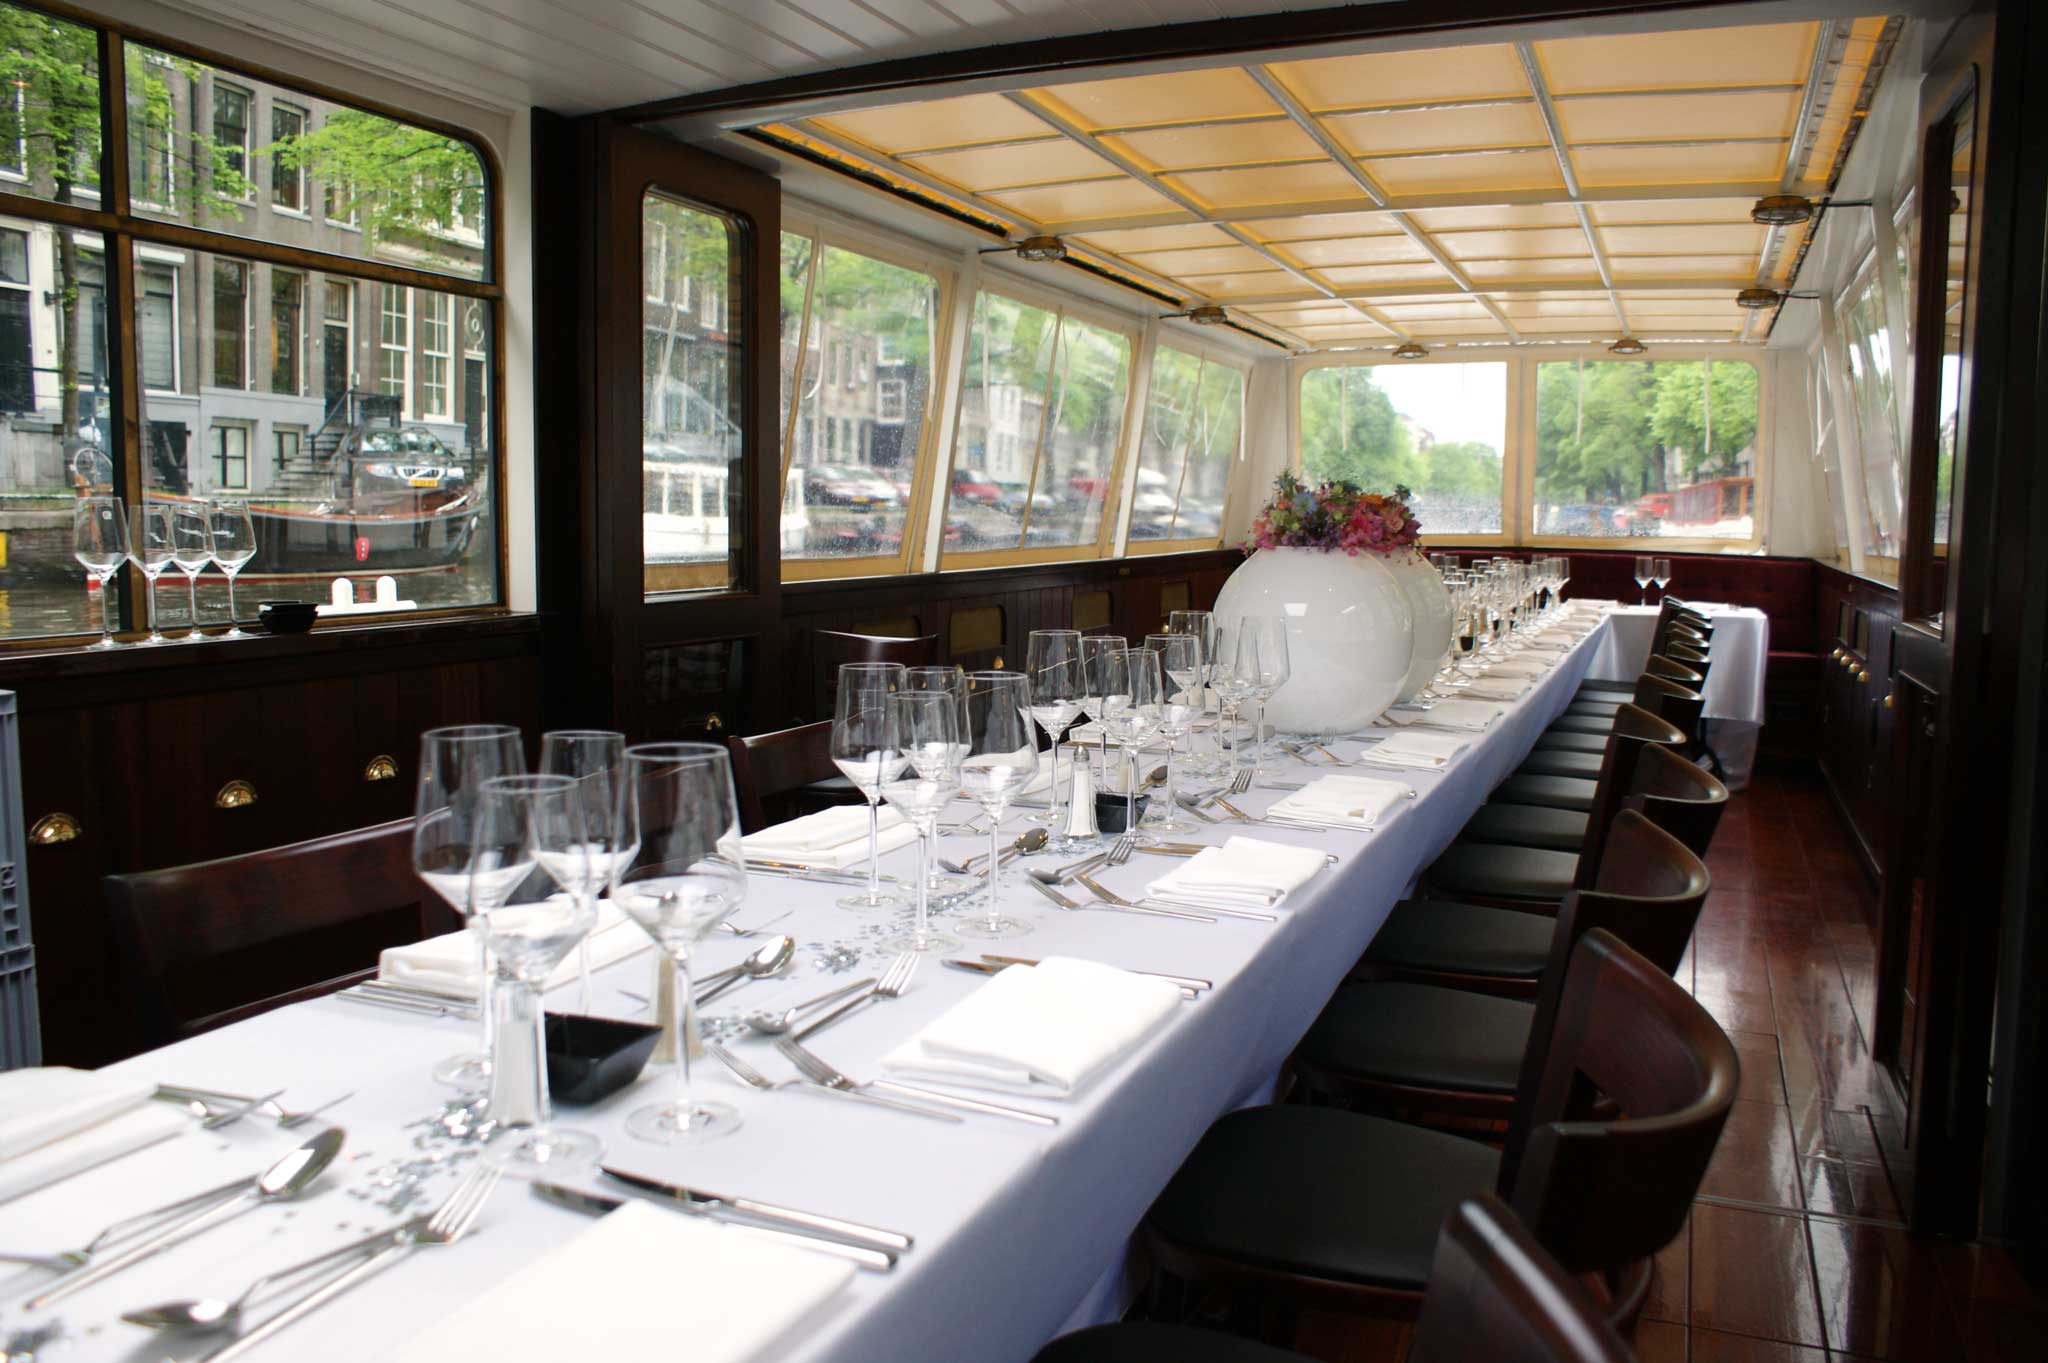 Bredero luxe diner opstelling